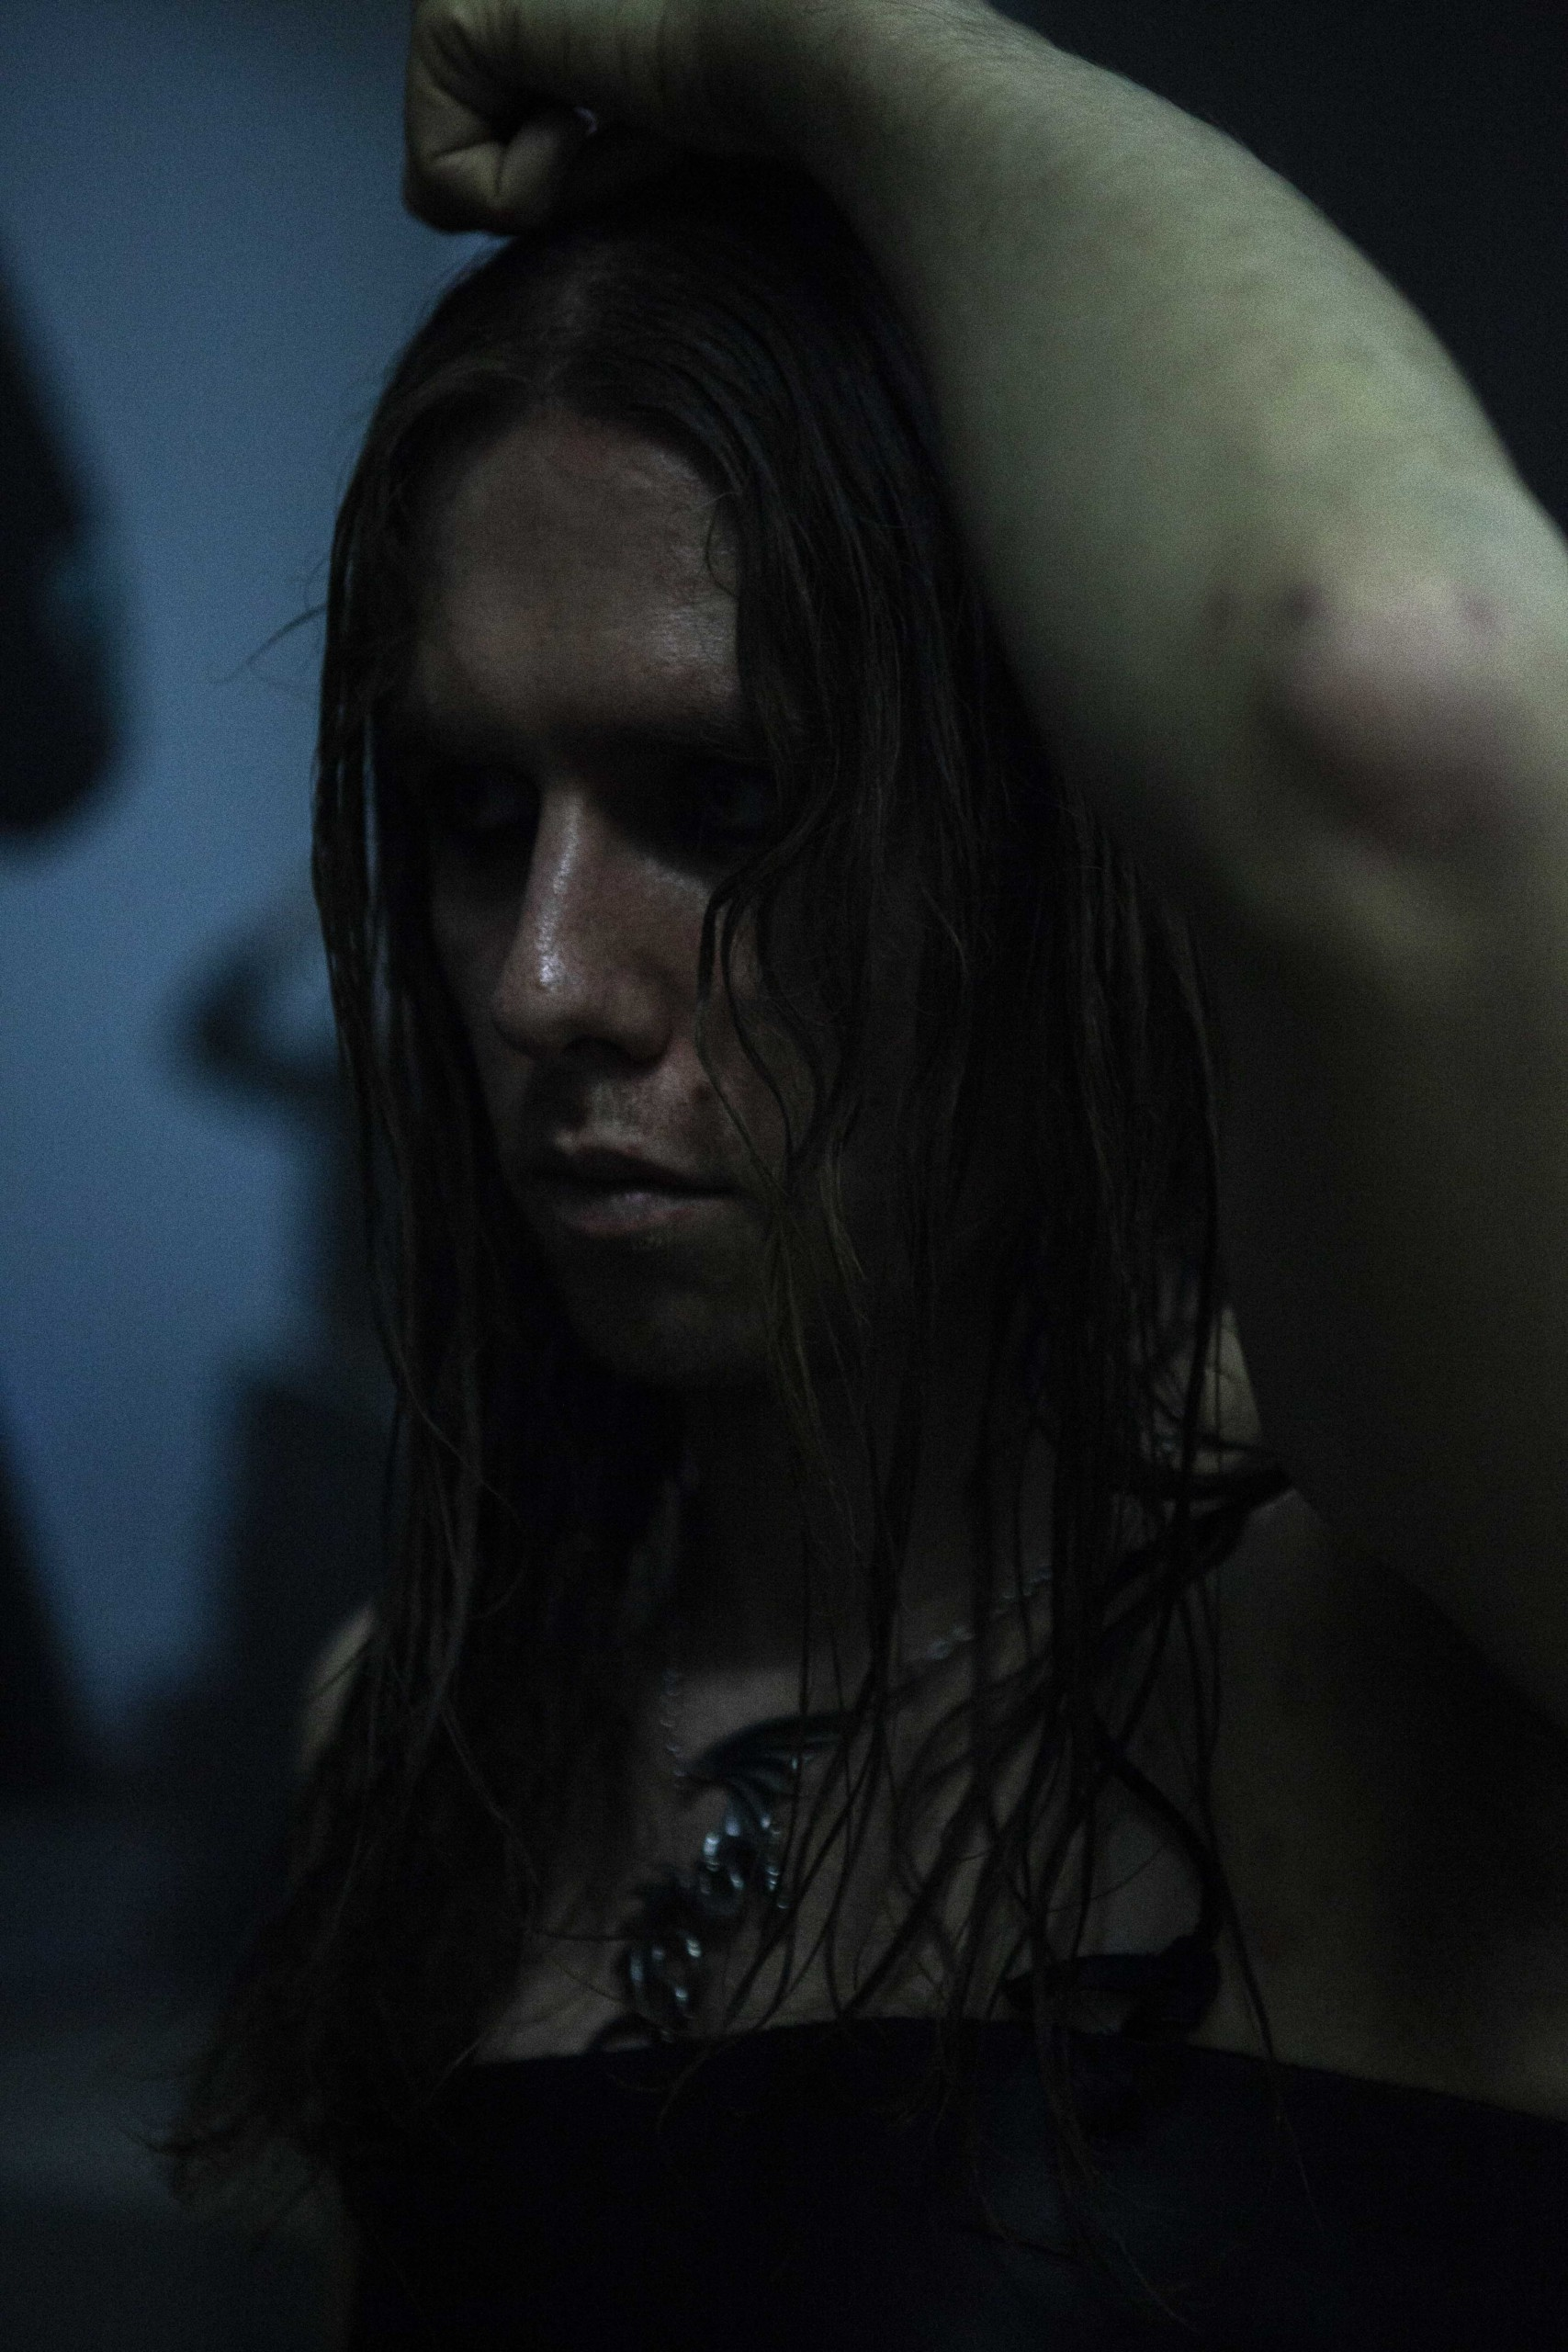 lukas hofmann / saliva Skin Come Leather, Vol. III (Group exhi + performance, Berlin)